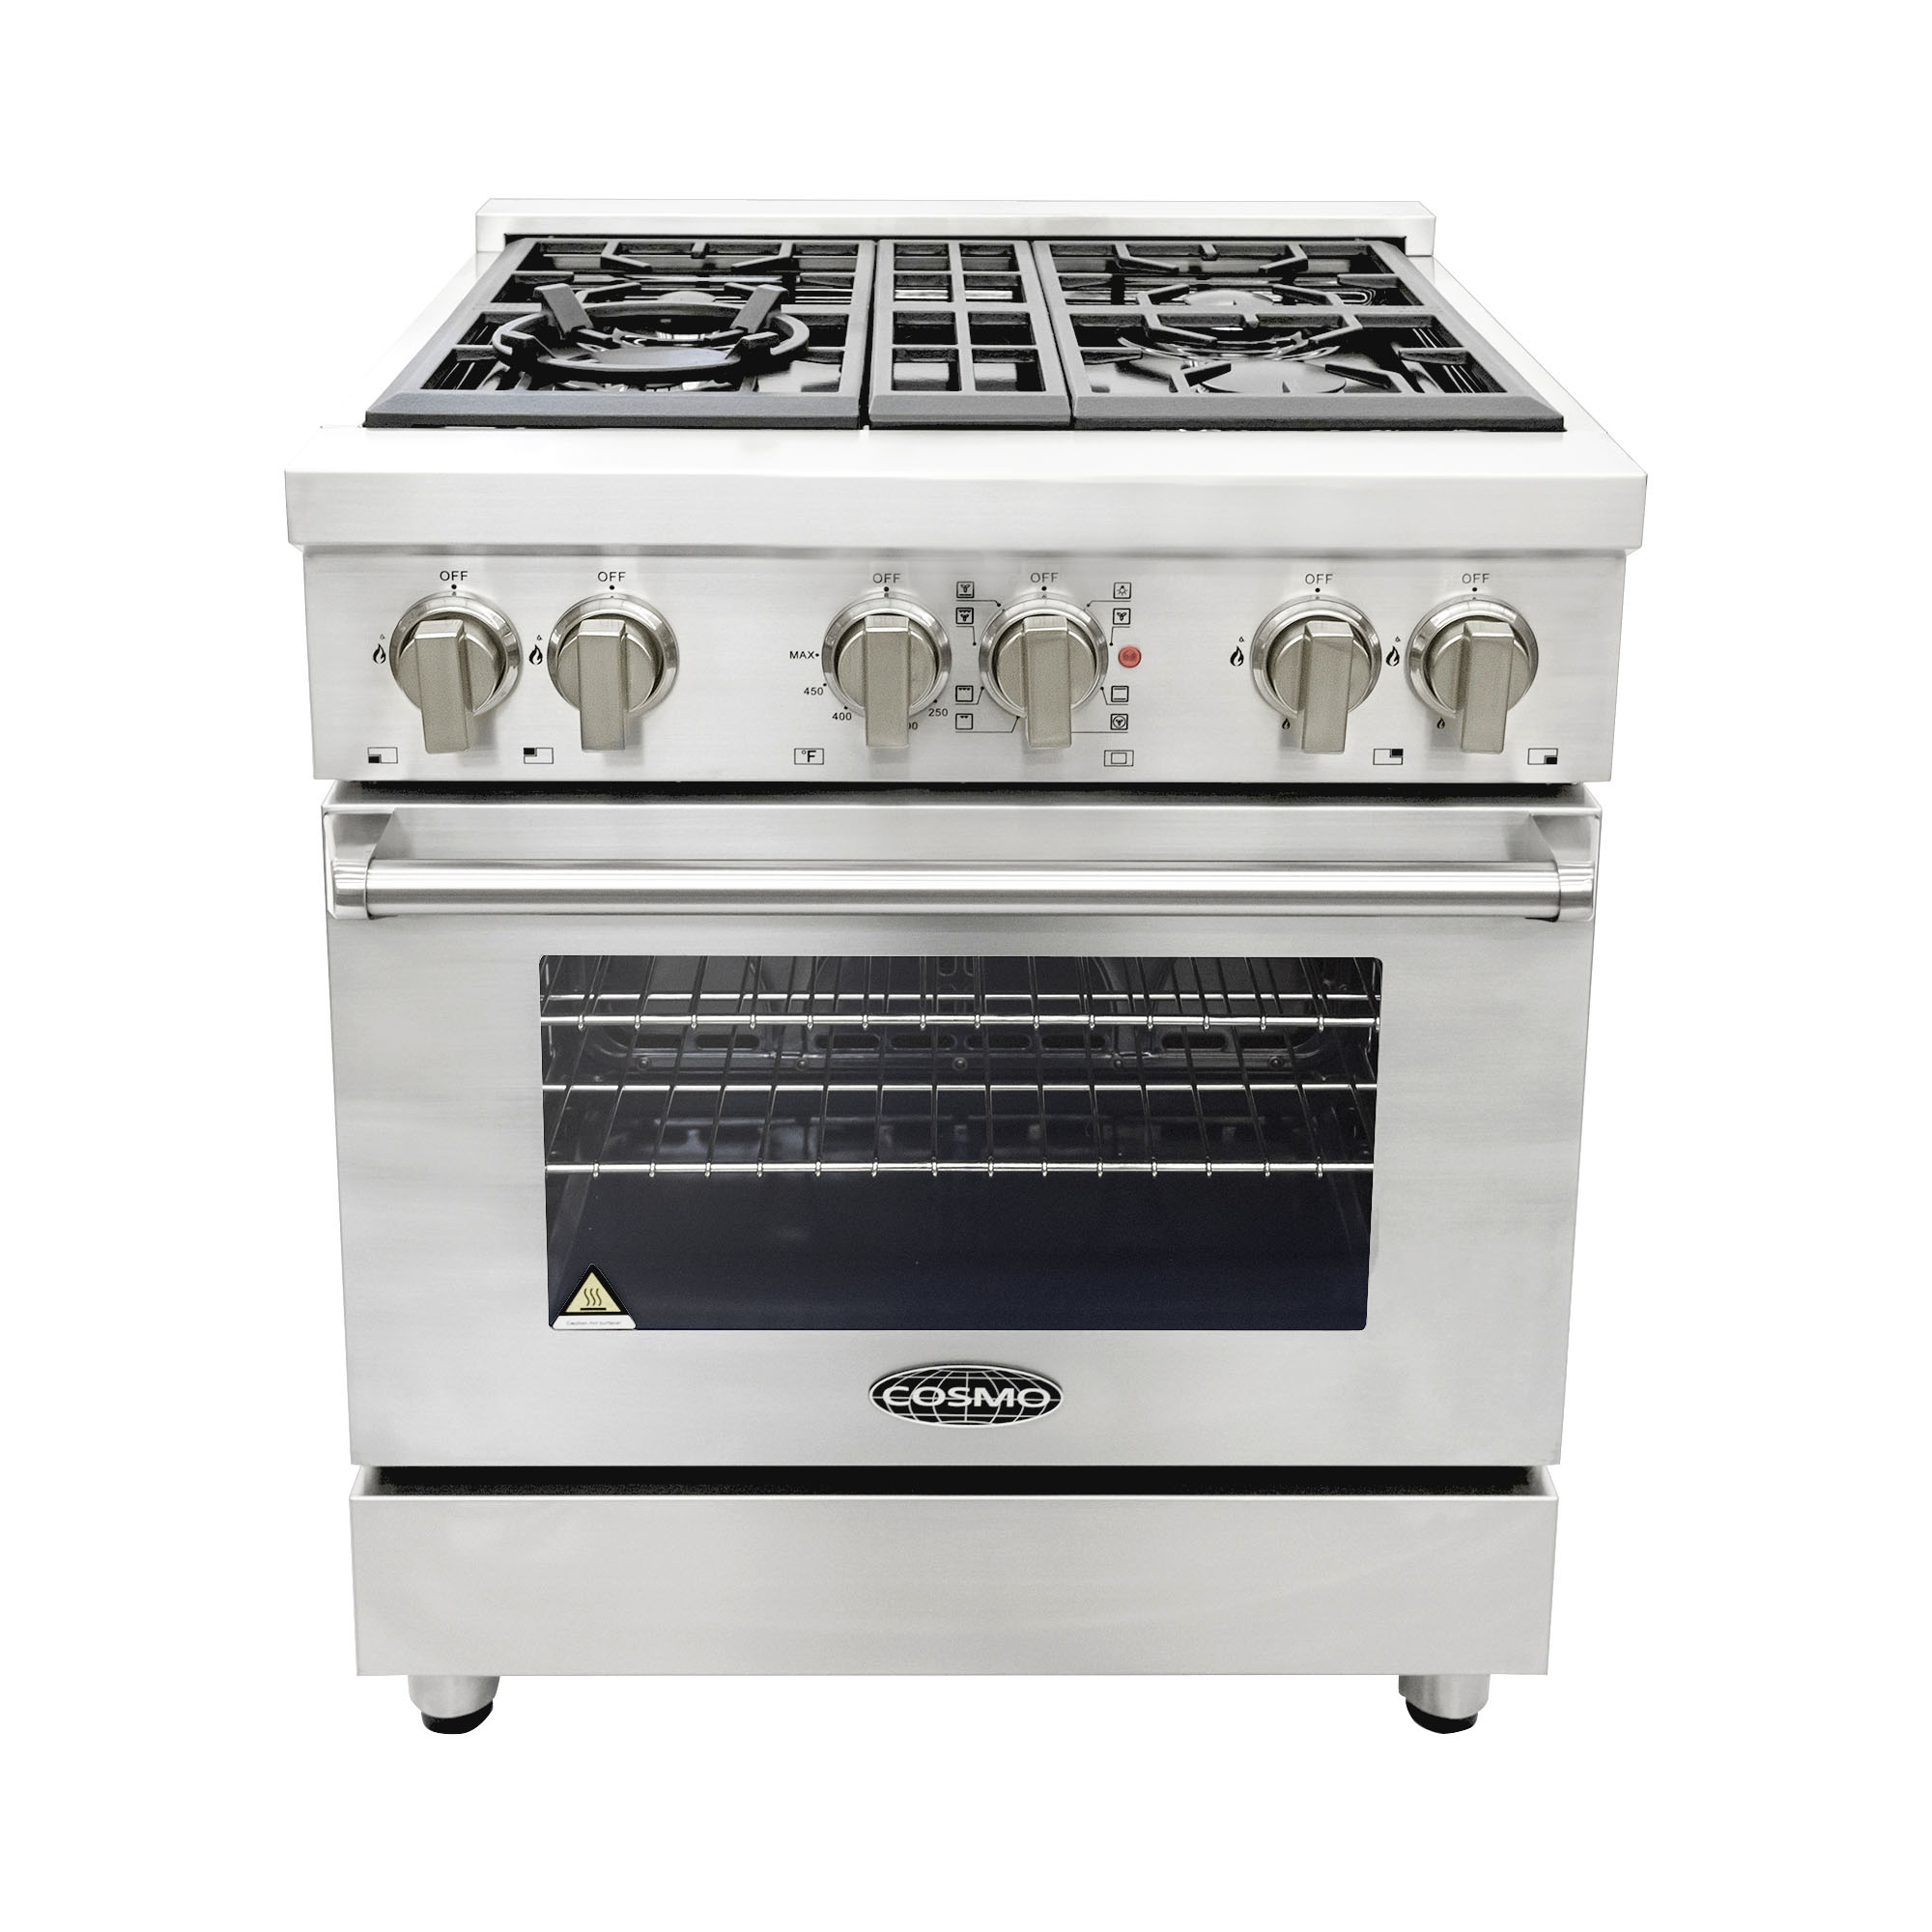 Cosmo Ranges COS-DFR304 30 in. Dual Fuel Range with 4 Italian Made Burners and Convection Oven